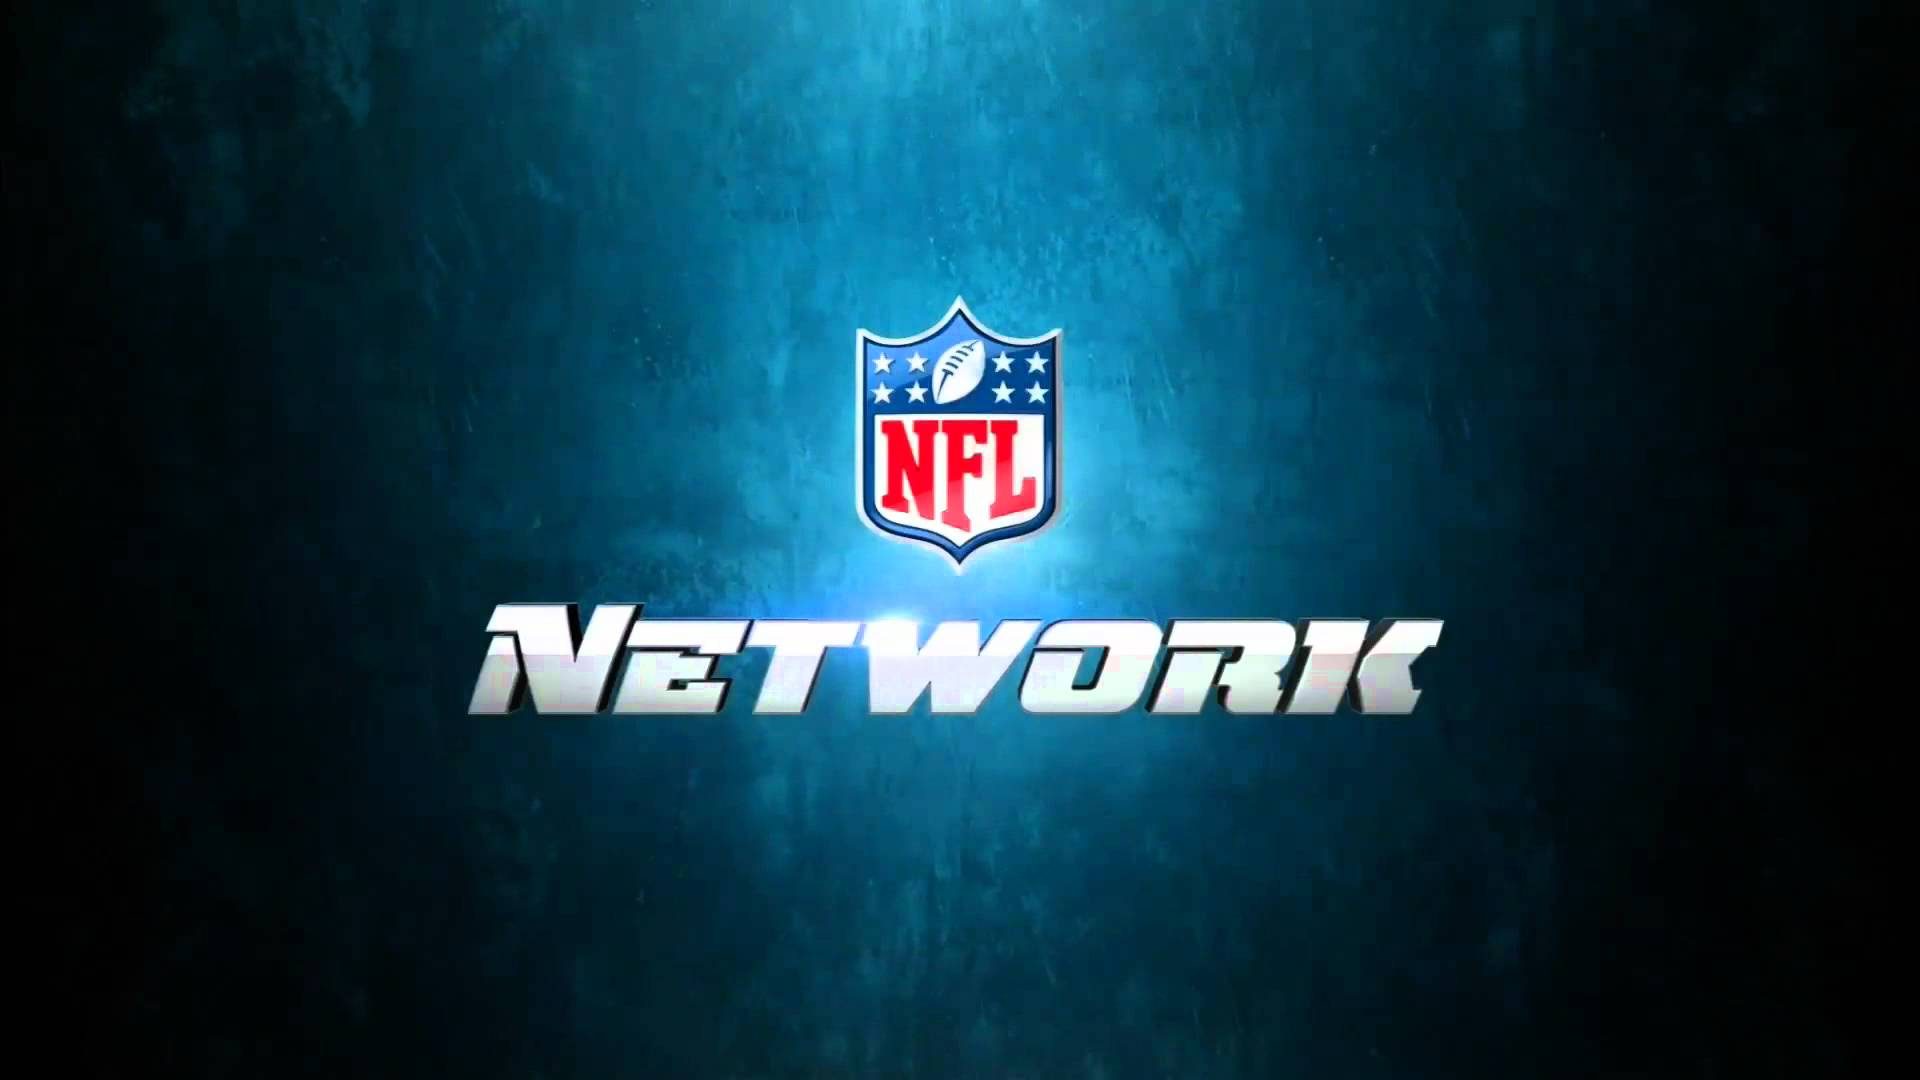 NFL Network Touchscreen Television by Horizon Display